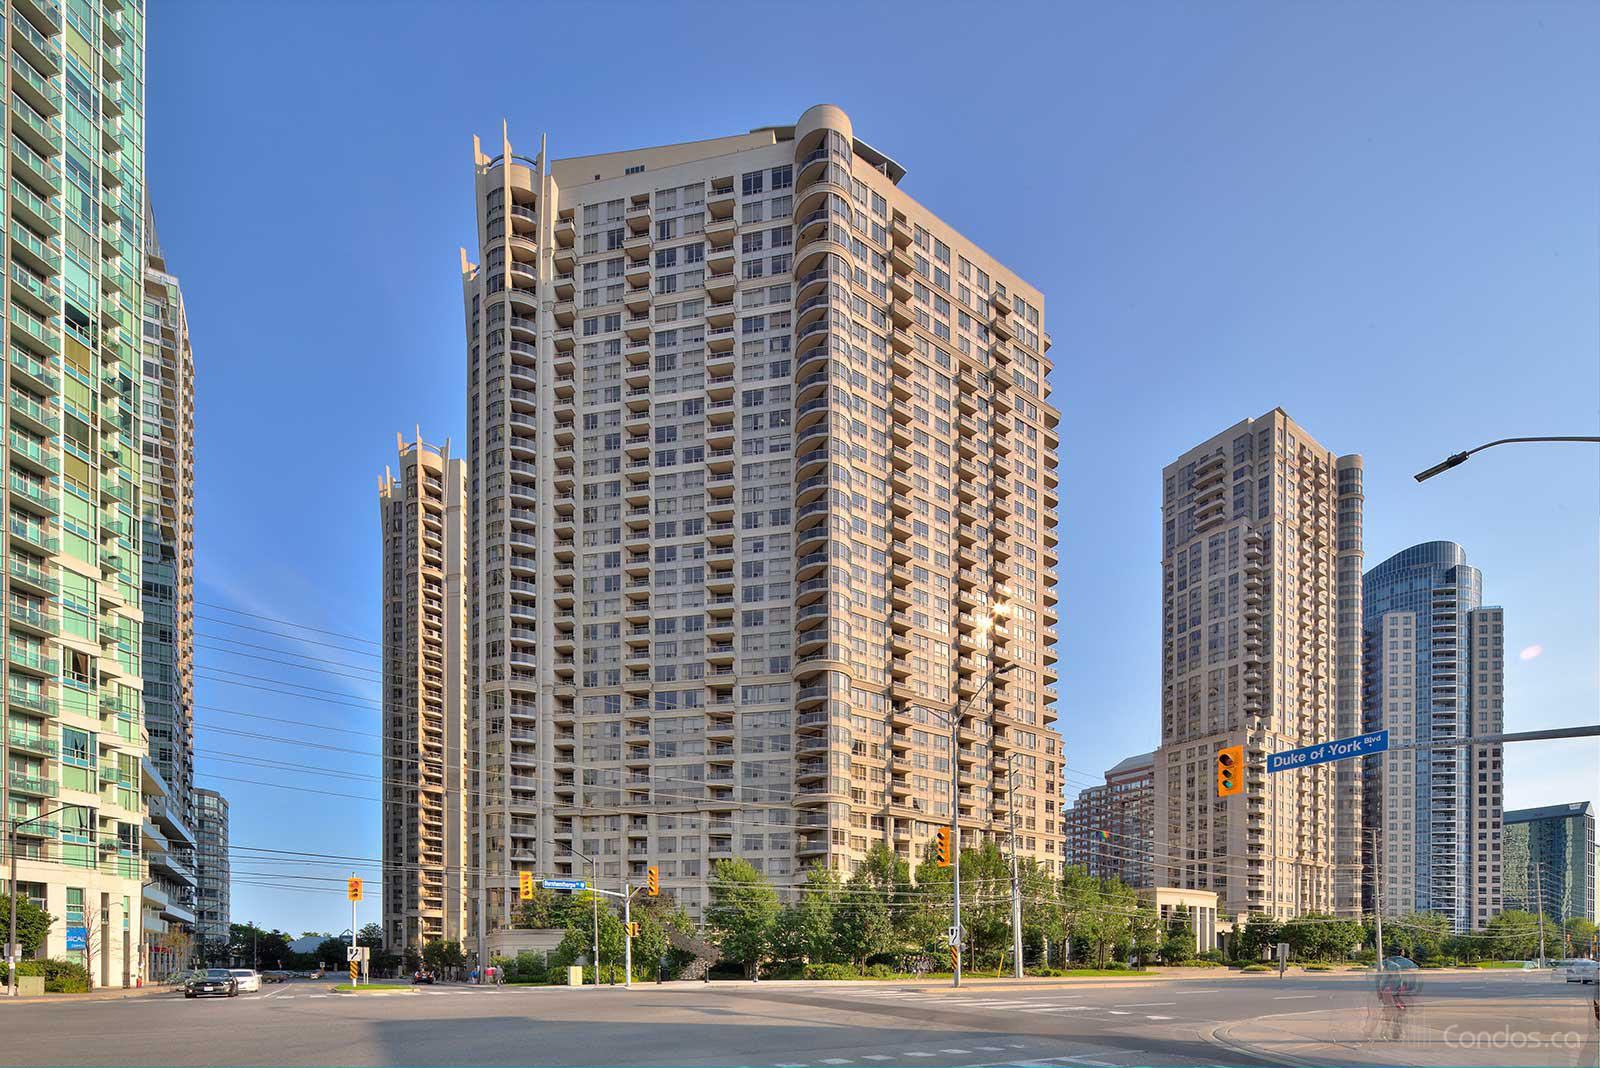 Ovation at 3880 Duke of York Blvd, Mississauga 1